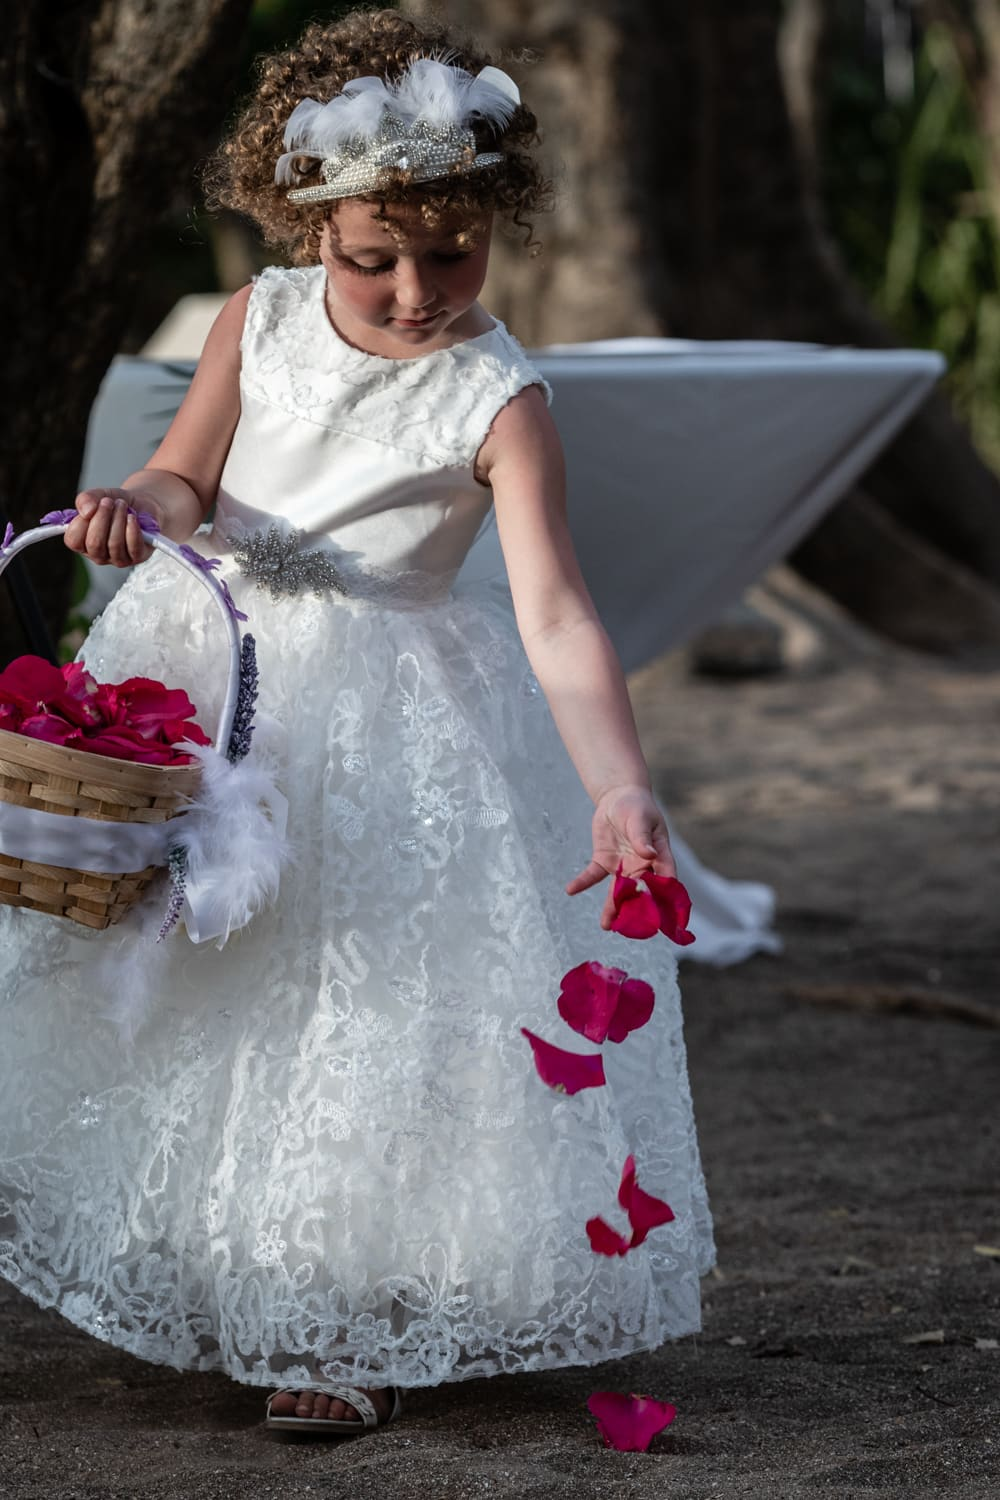 Flower girl in white dress tossing red rose petals on beach sand.